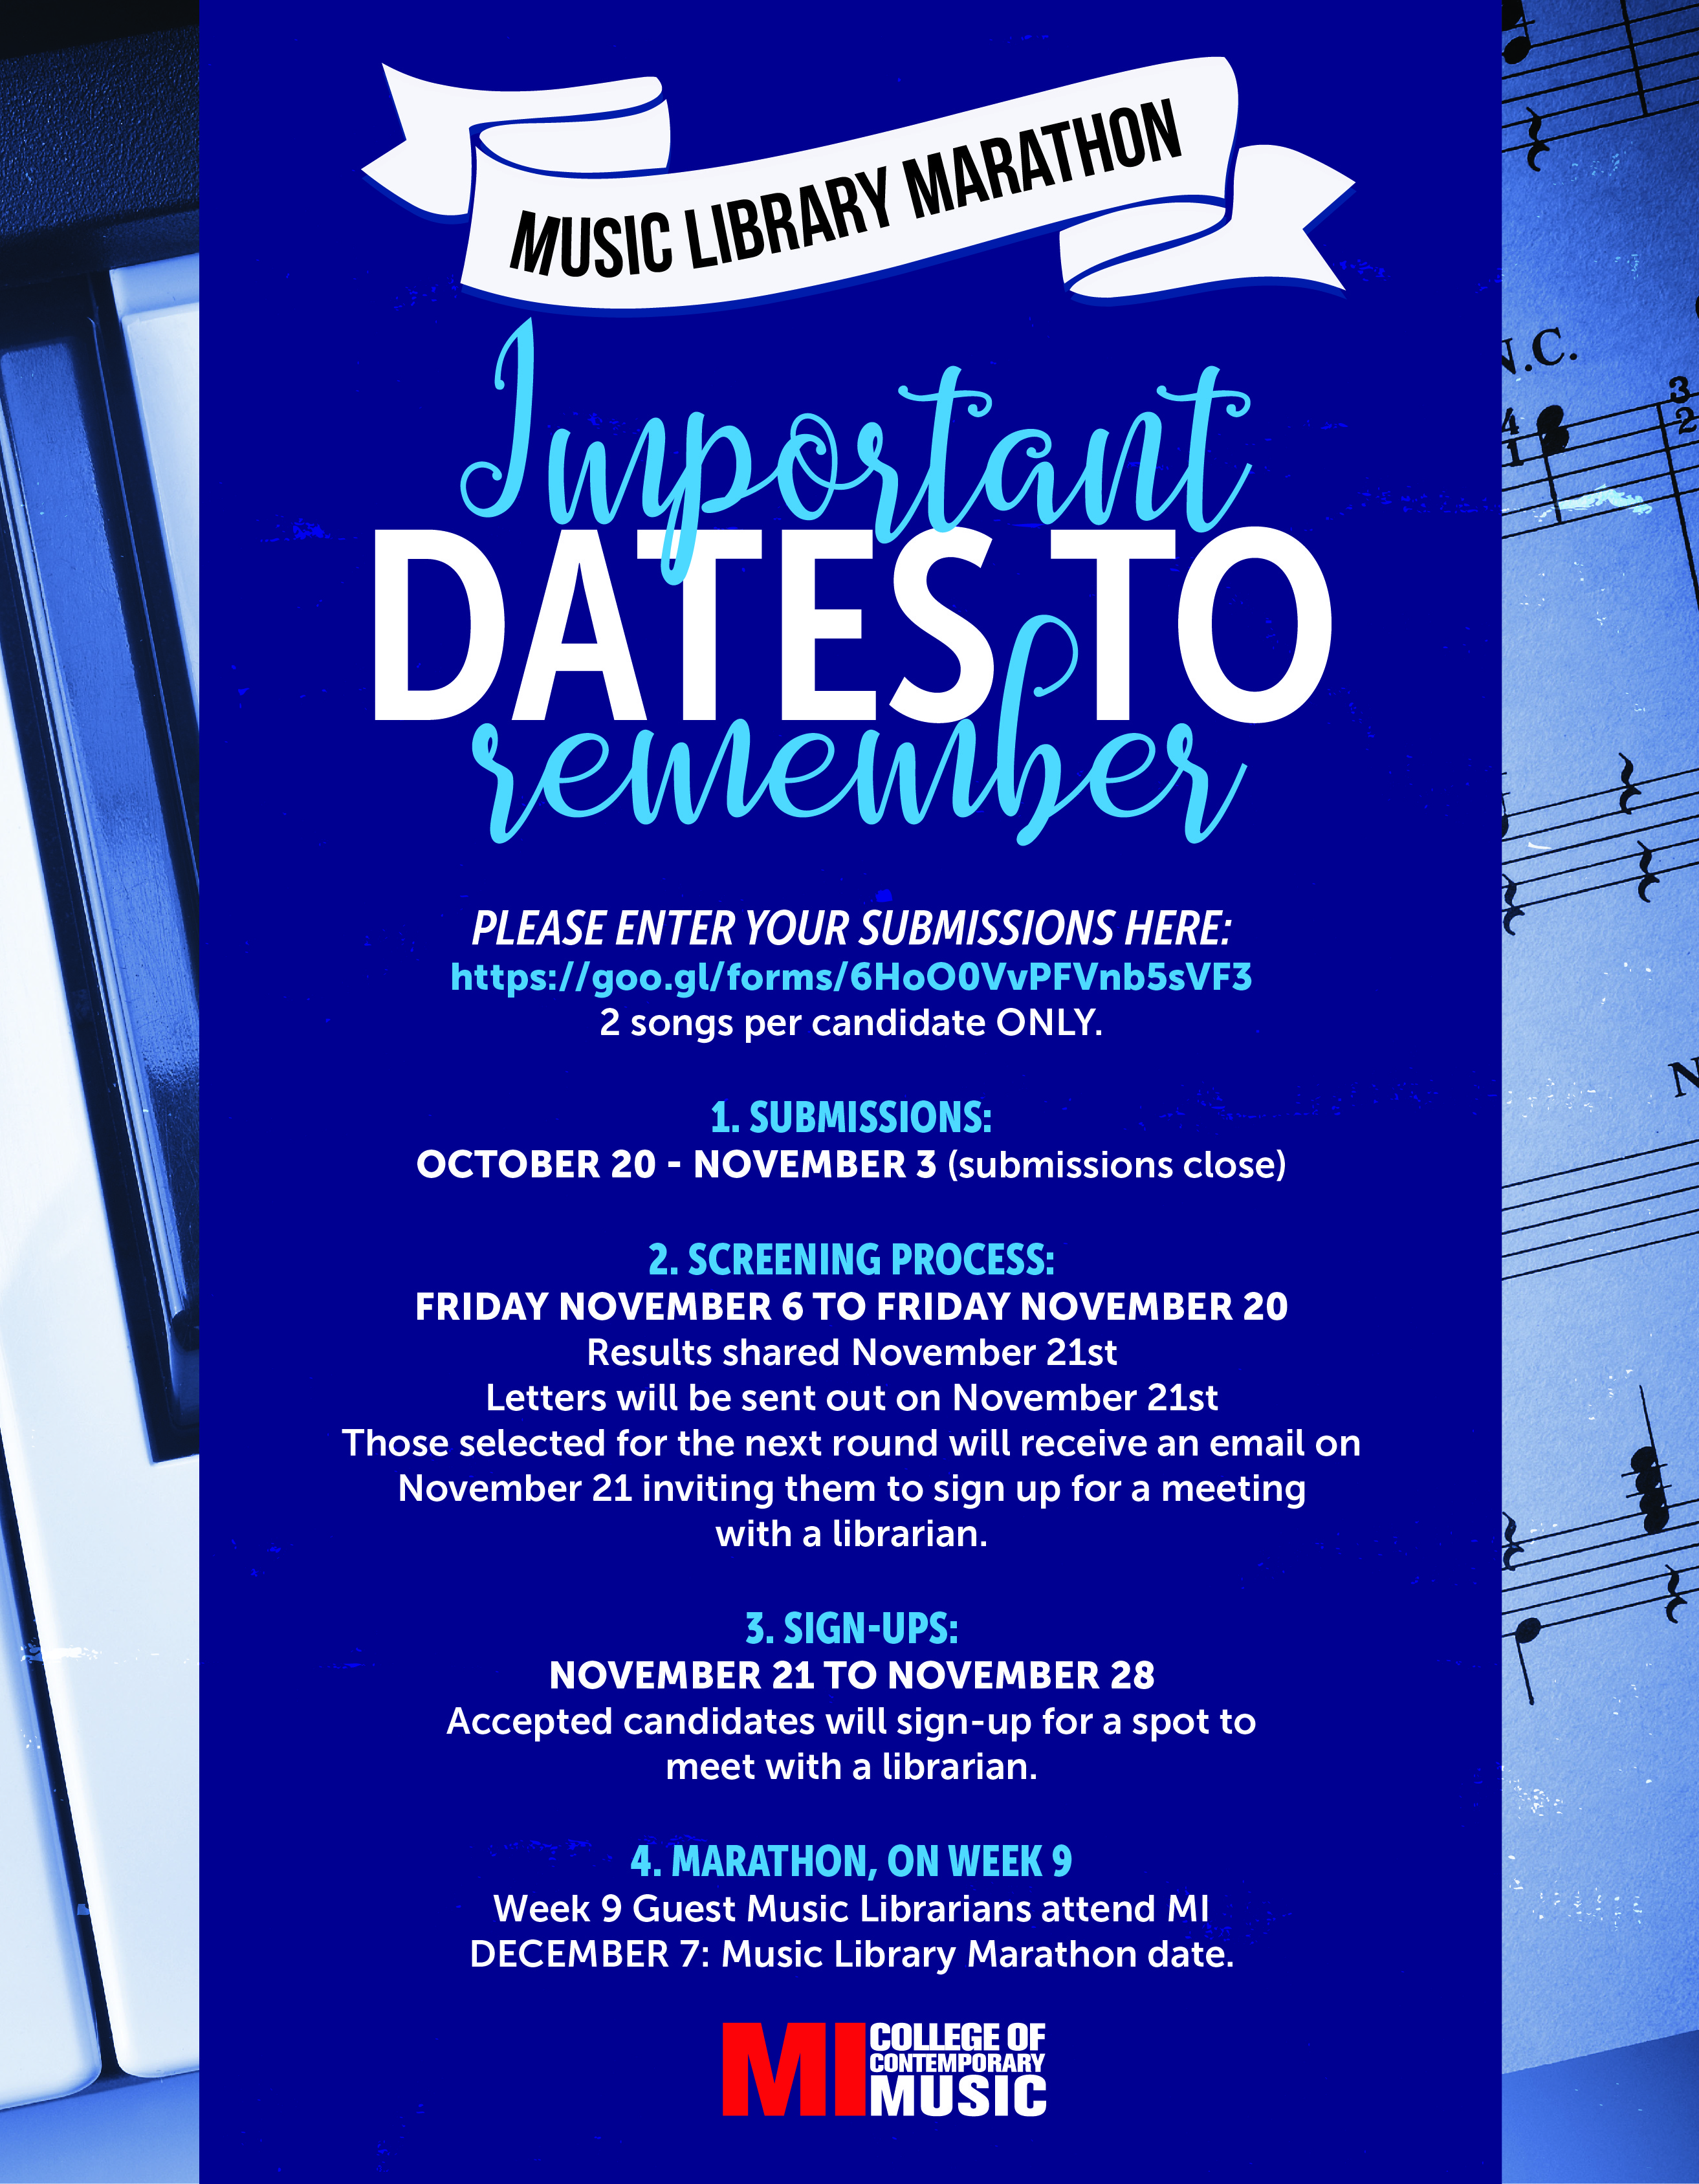 MUSIC LIBRARY IMPORTANT DATES TO REMEMBER - THURSDAY, DECEMBER 7, 2017